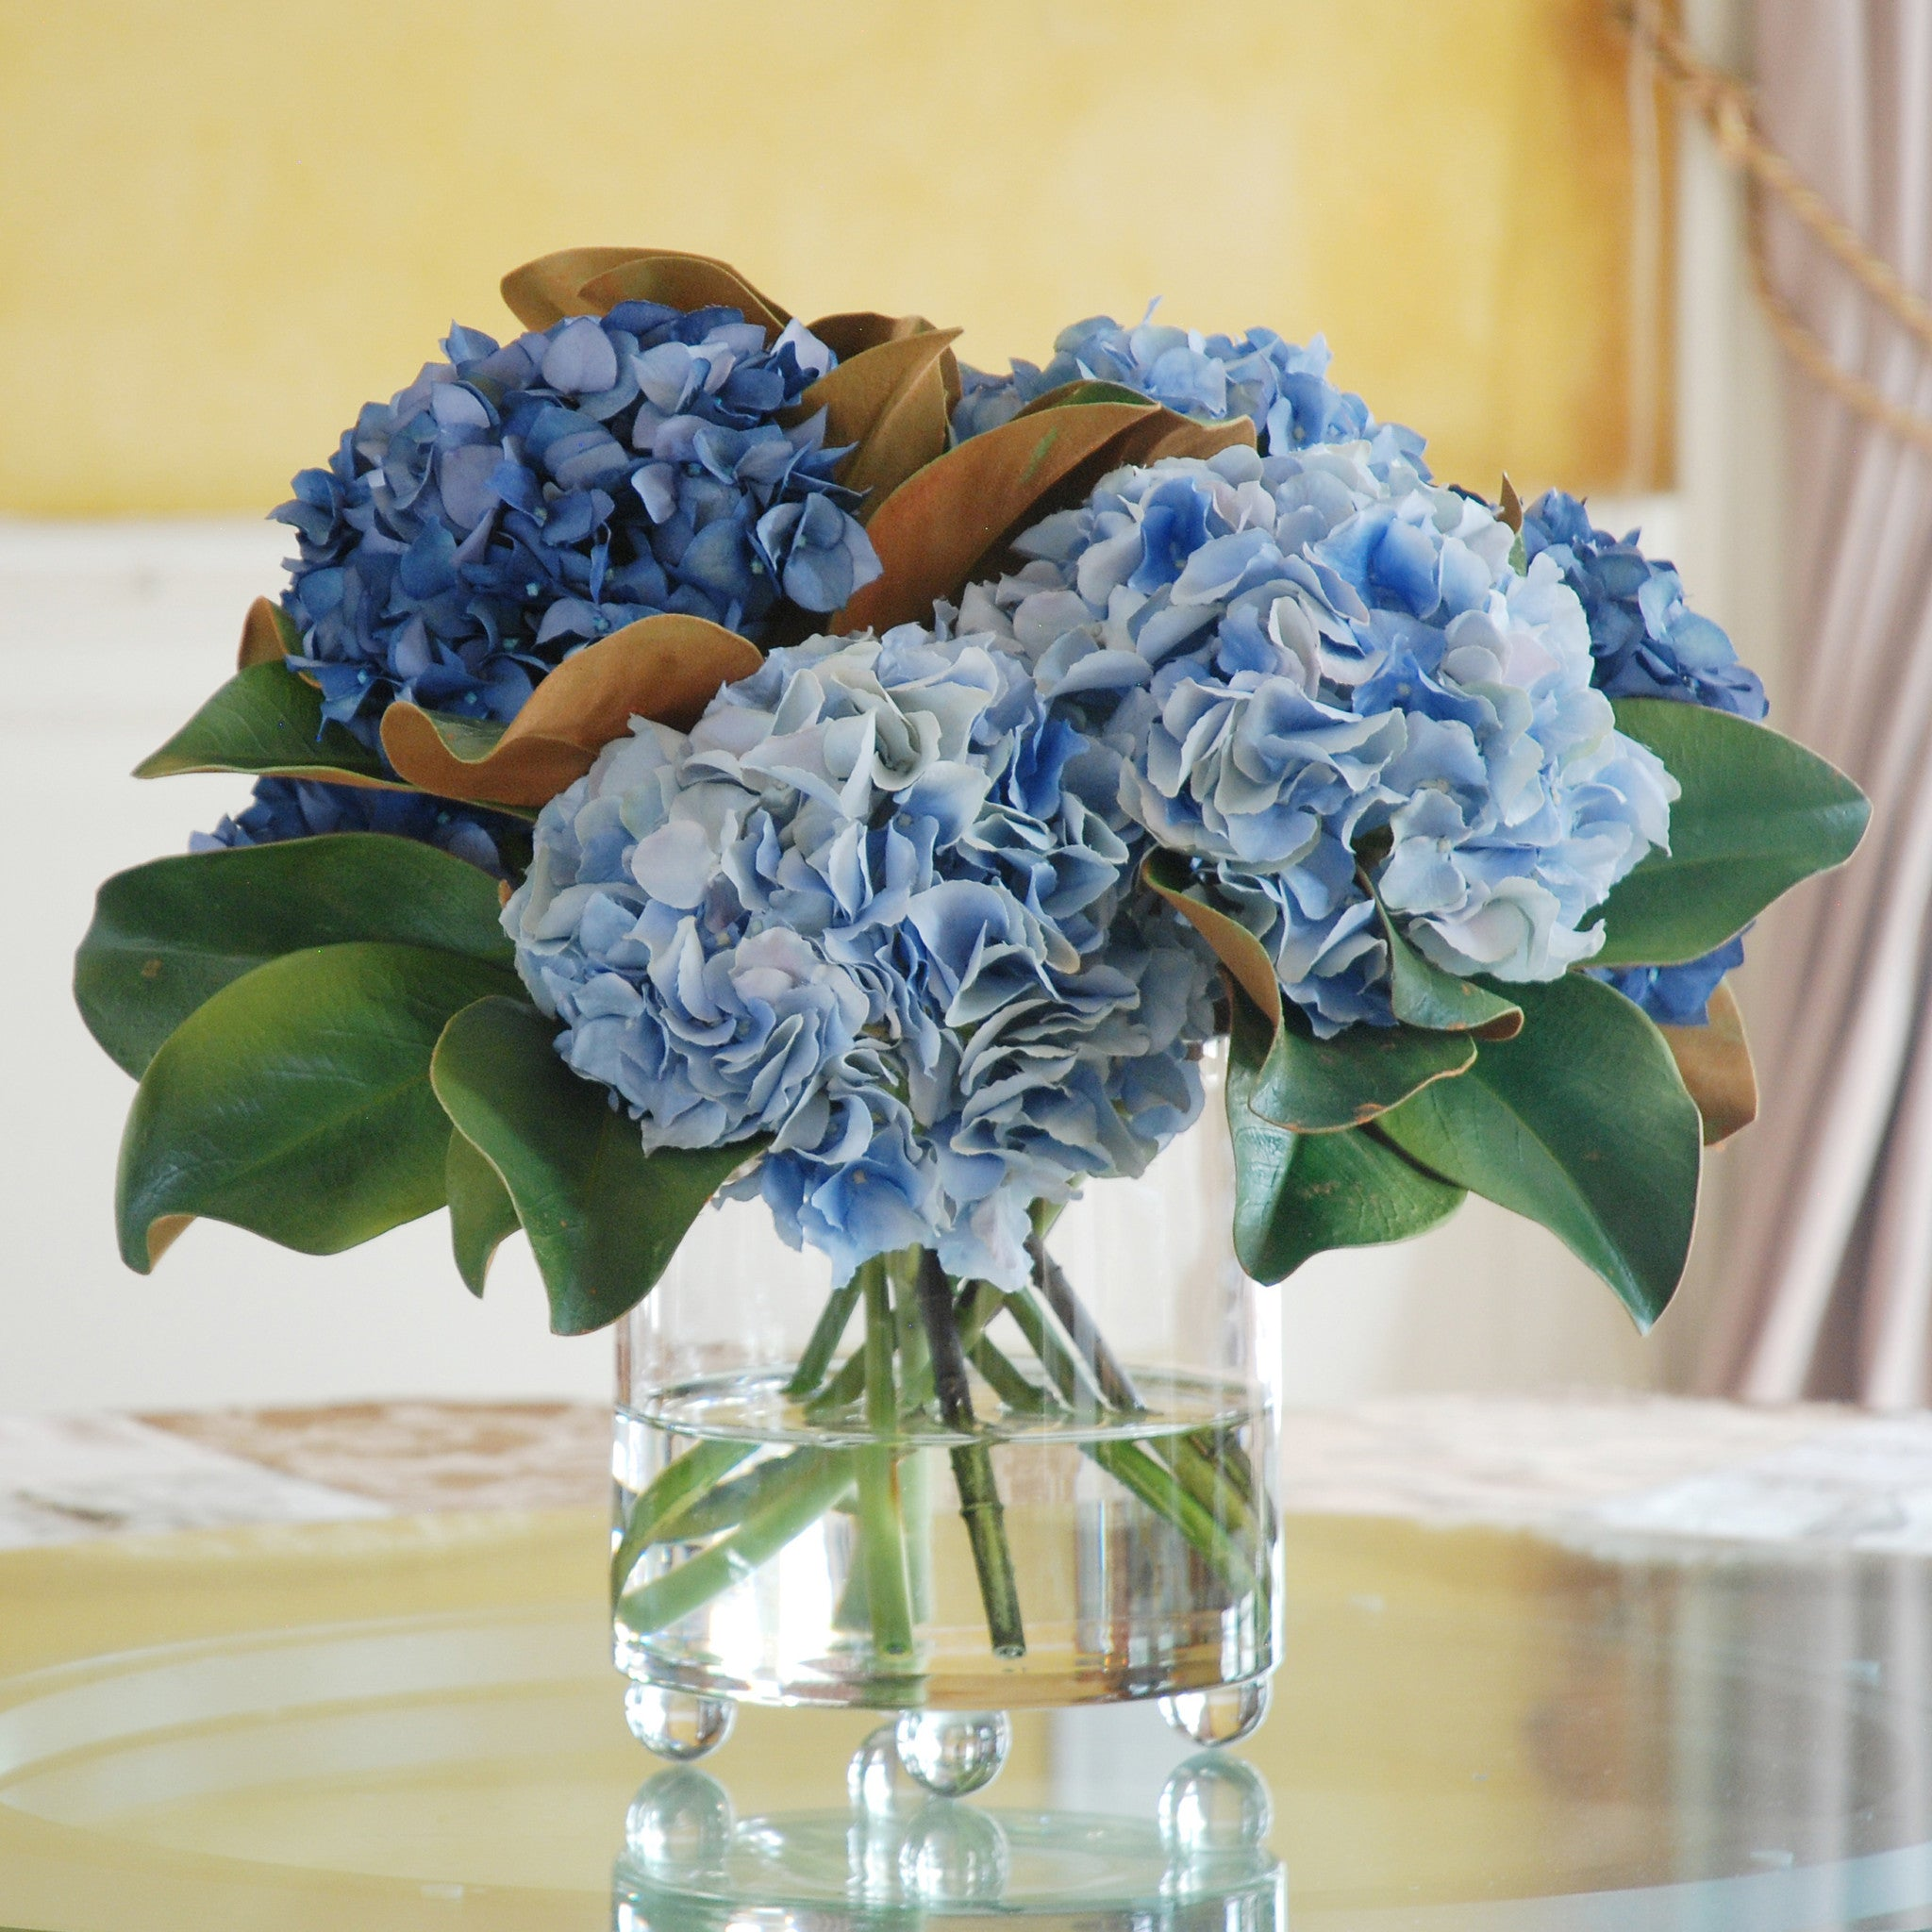 blue hydrangea in glass  winward home finest permanent botanicals, Natural flower